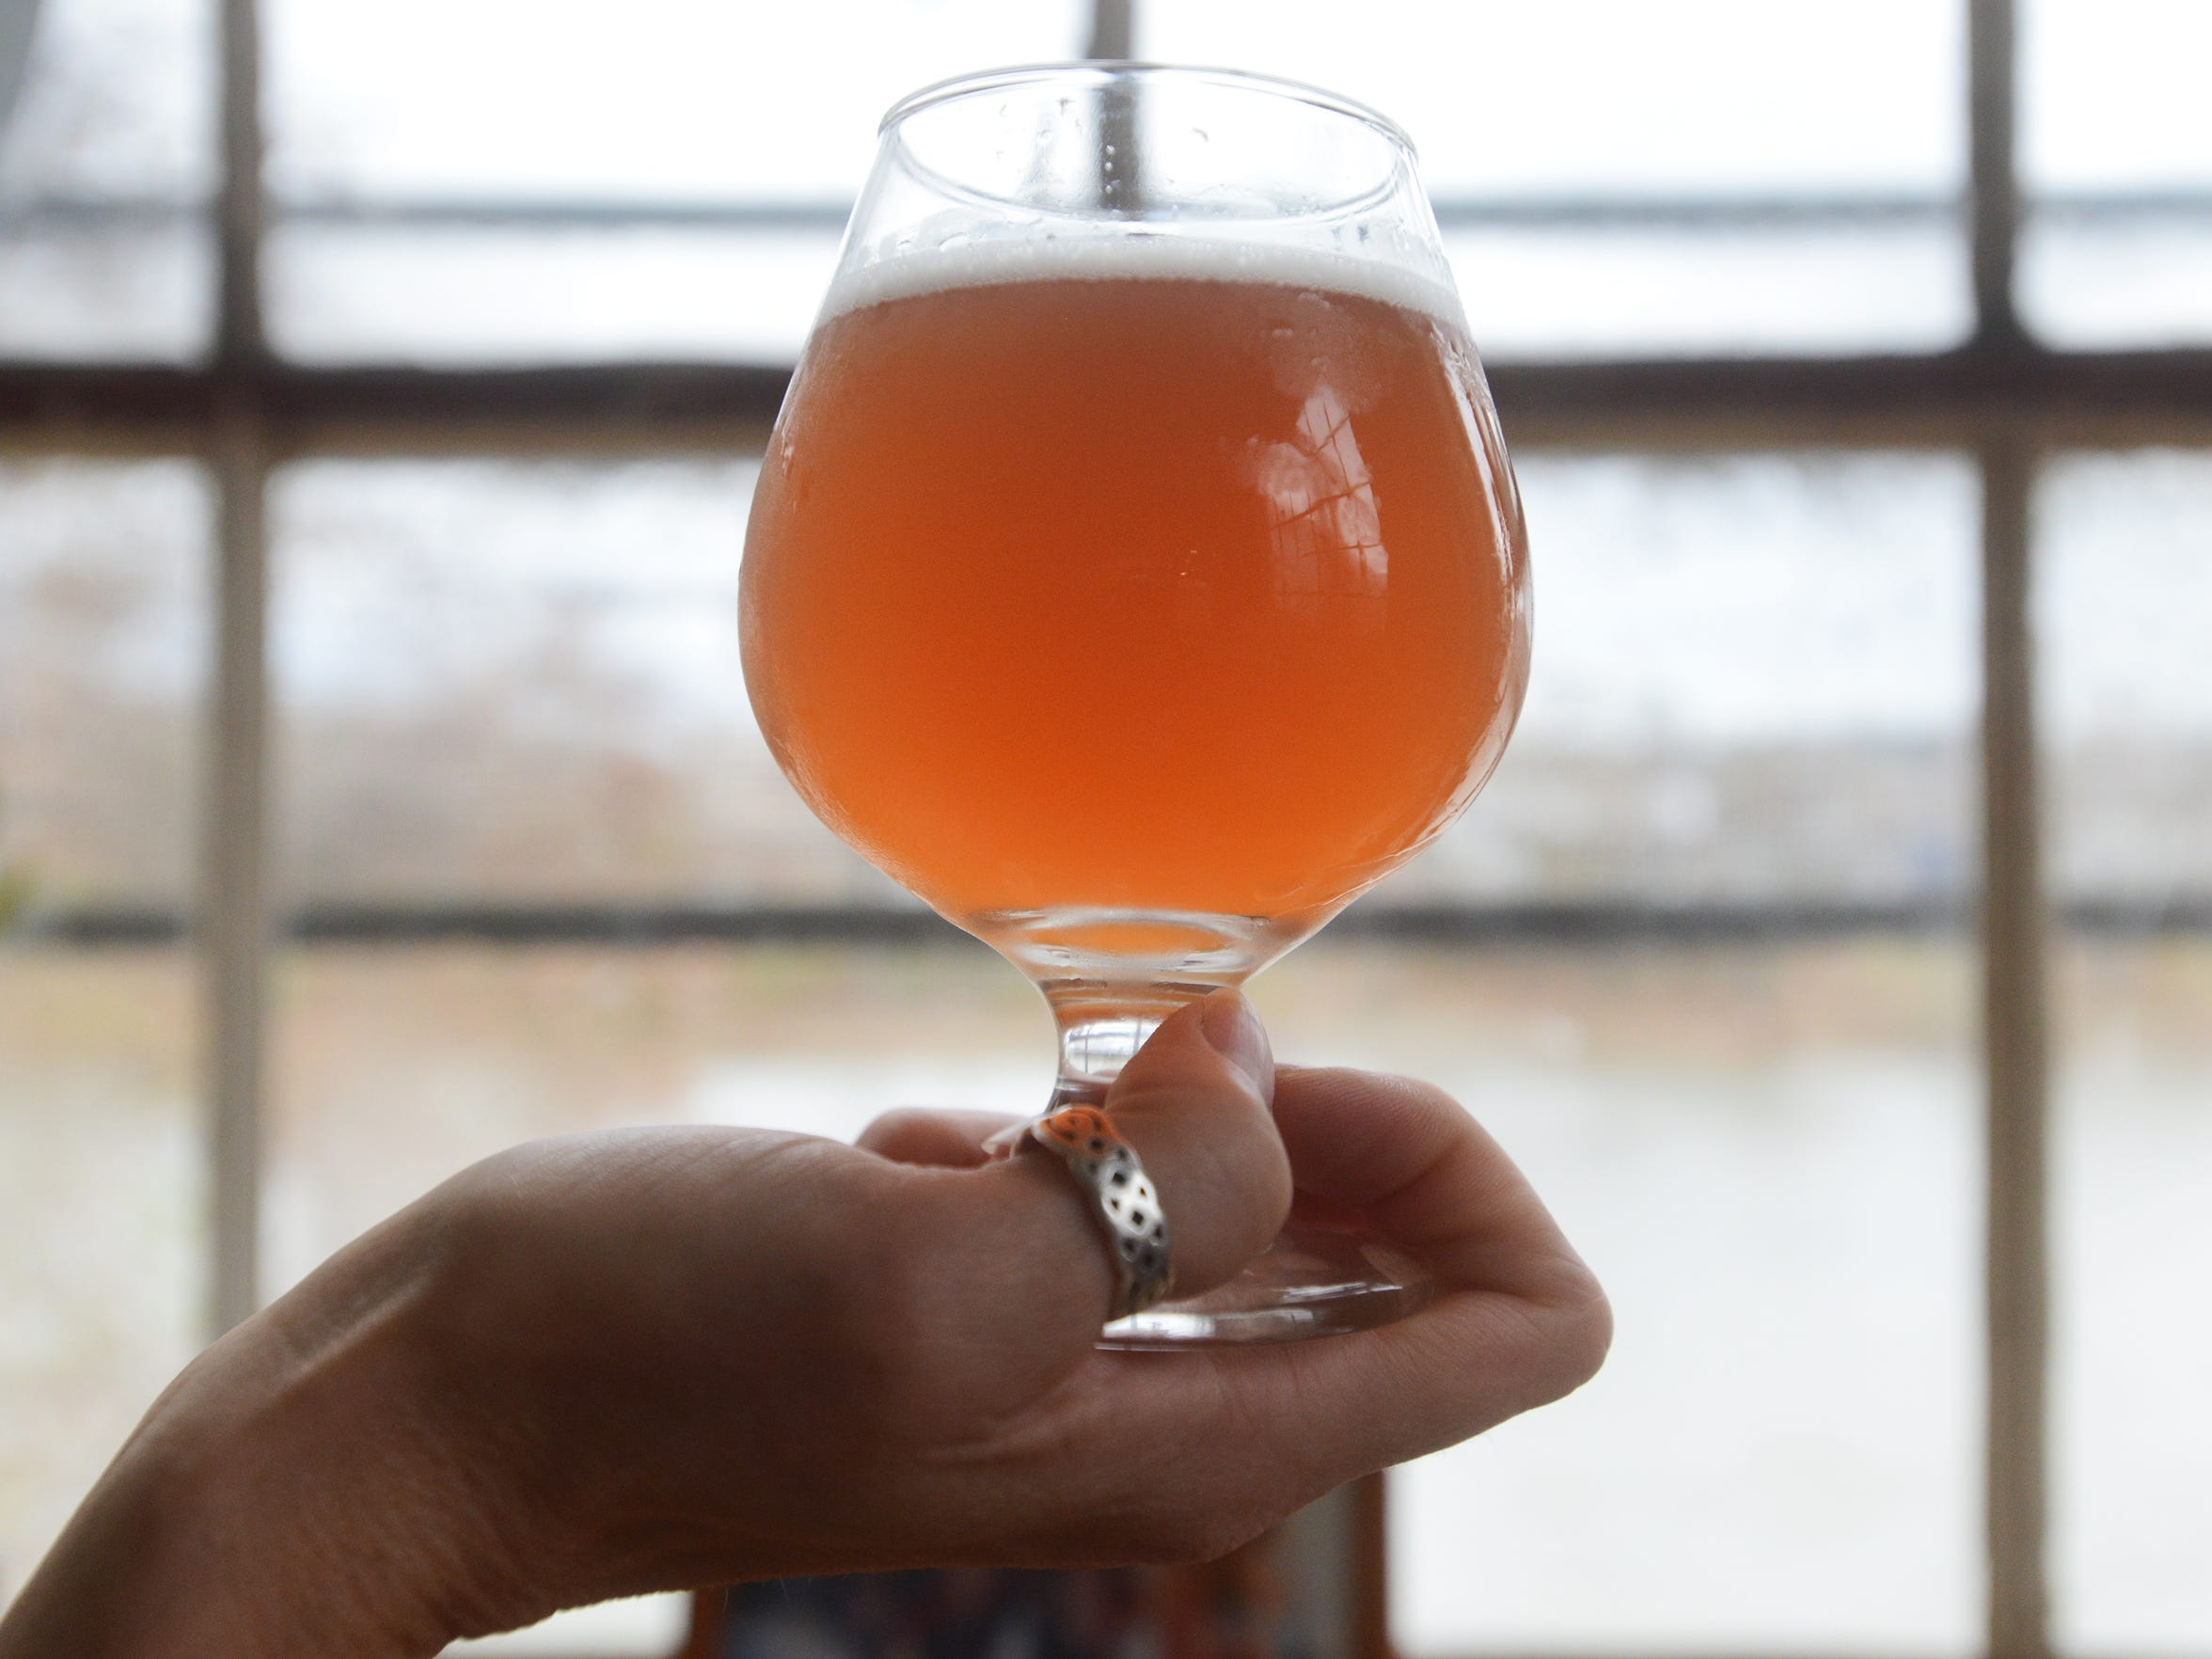 La Belette Rose, a Saison-style limited edition beer